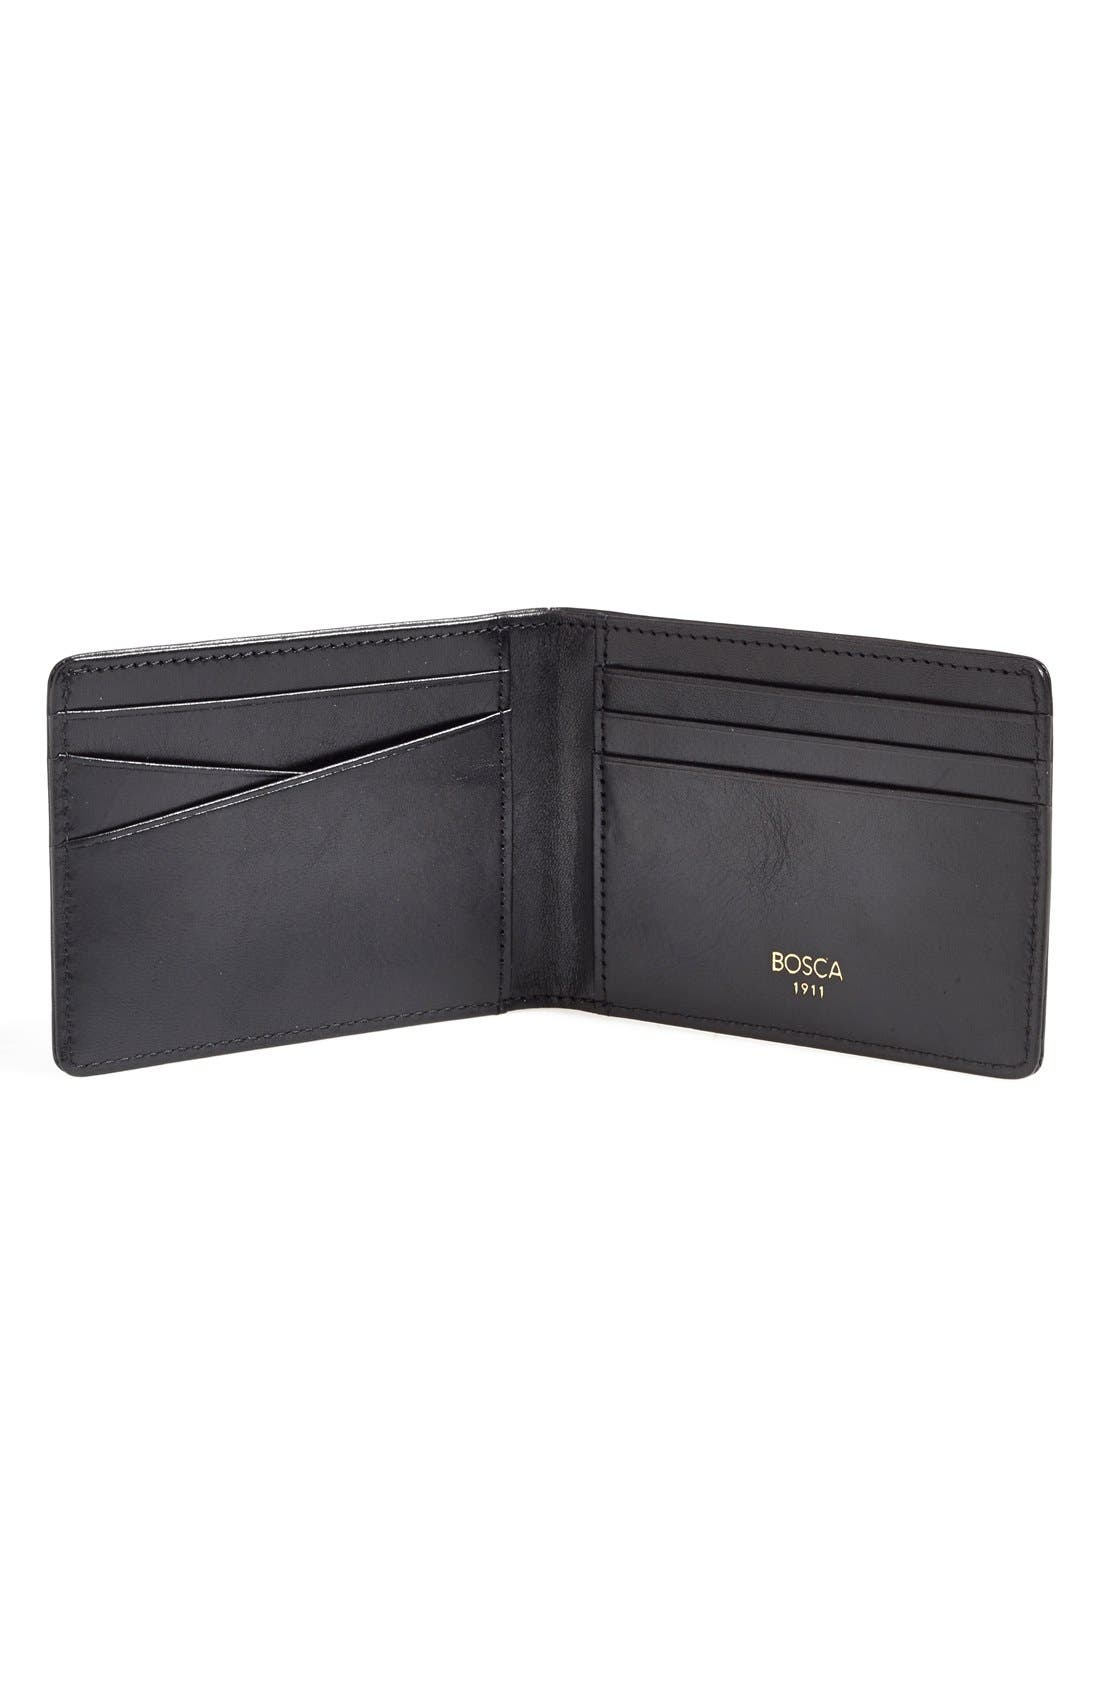 Small Bifold Wallet,                             Alternate thumbnail 13, color,